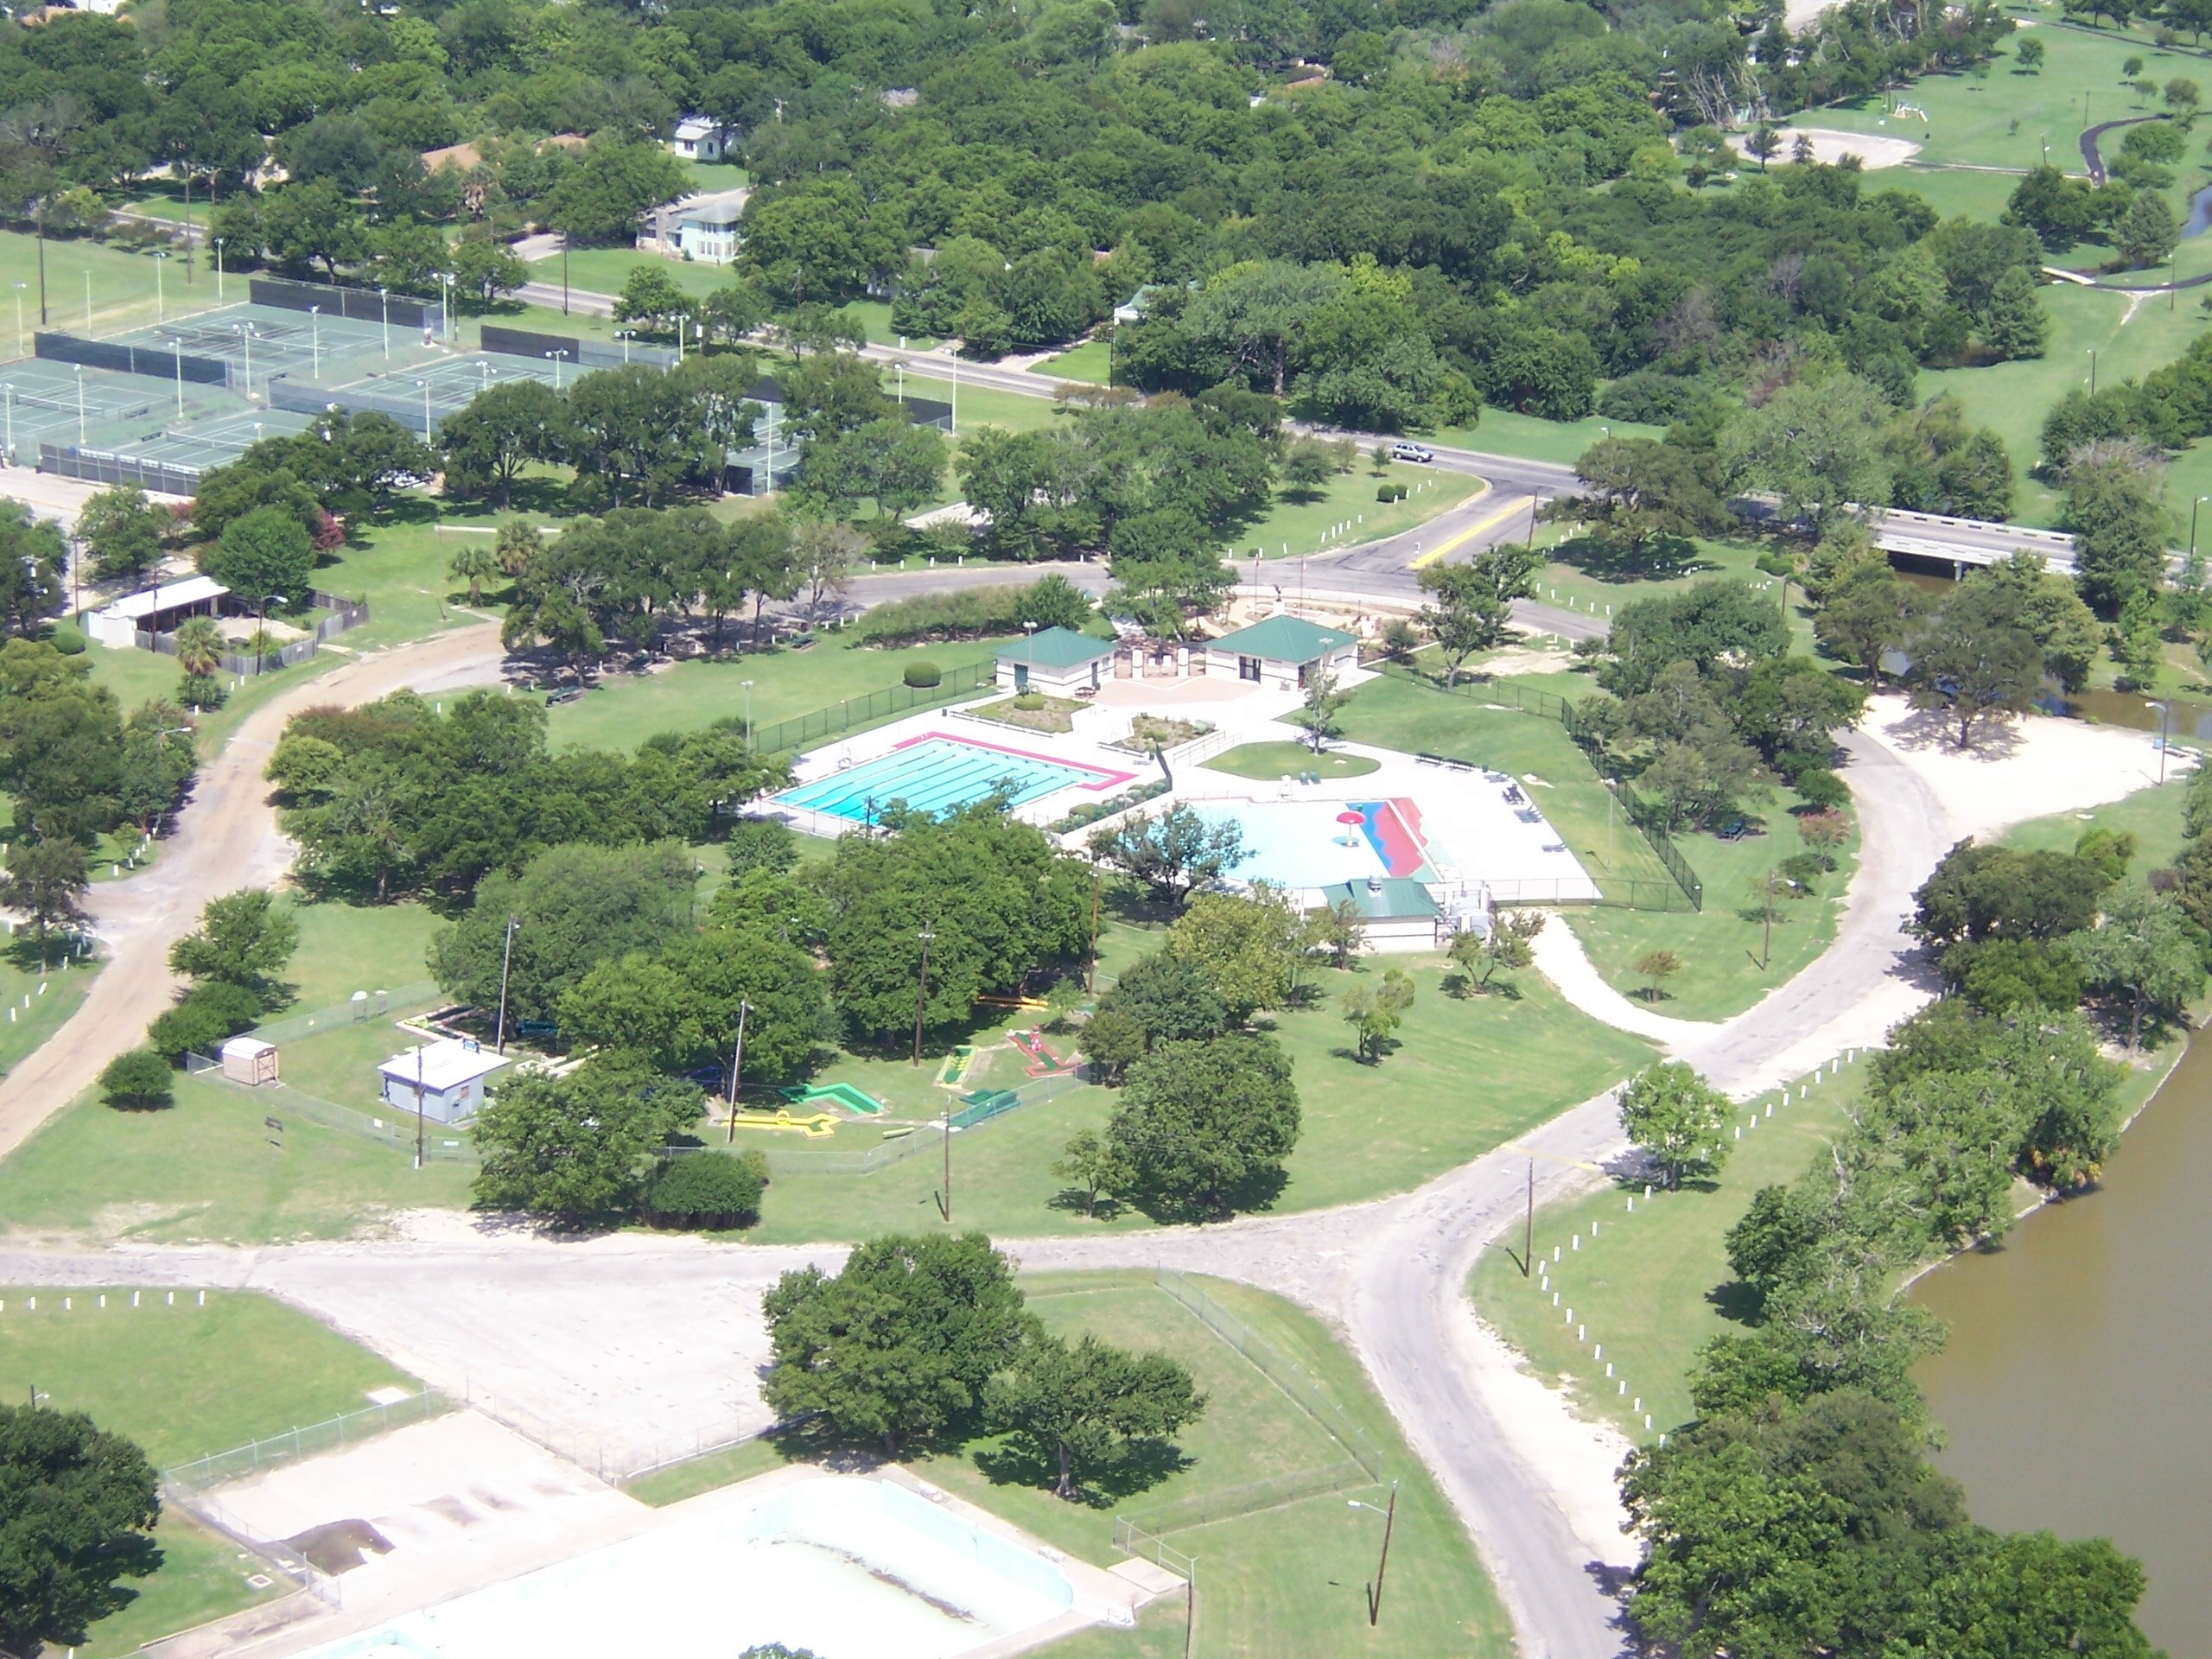 Aerial view of parks